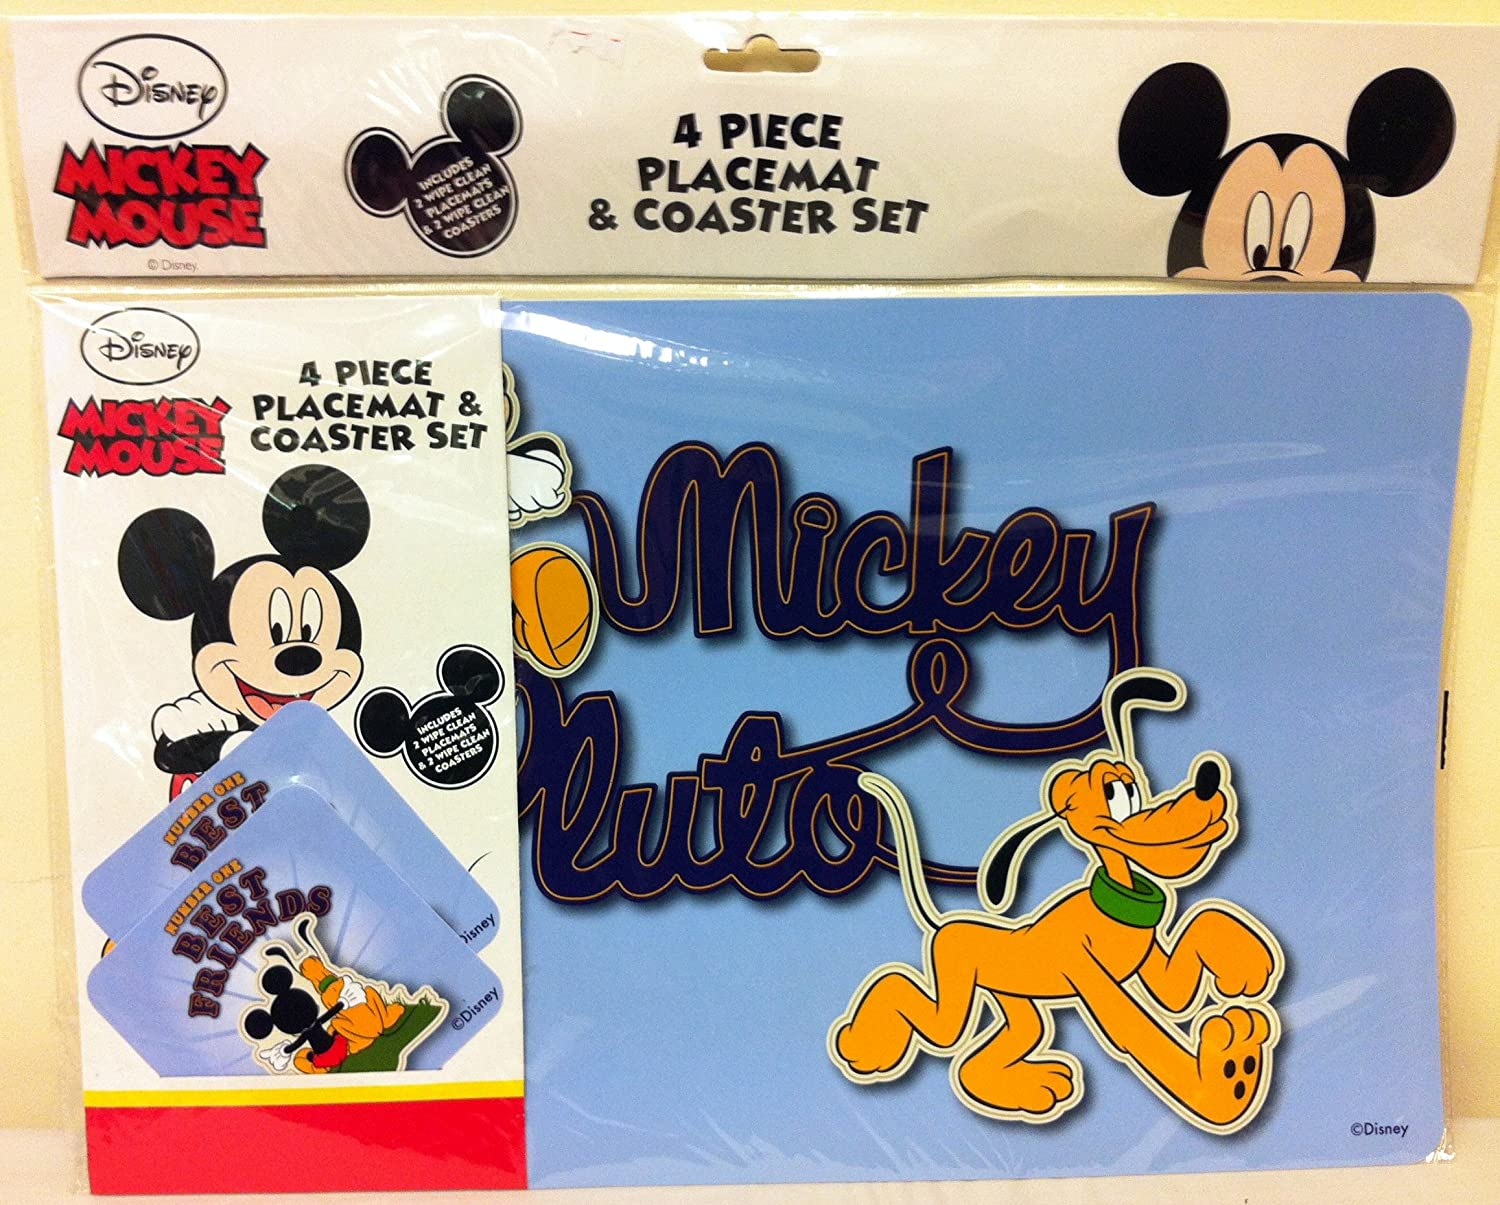 NEW Cartoon Disney Mickey and Minnie Mouse Set of 2 Coasters Placemat UK SELLER